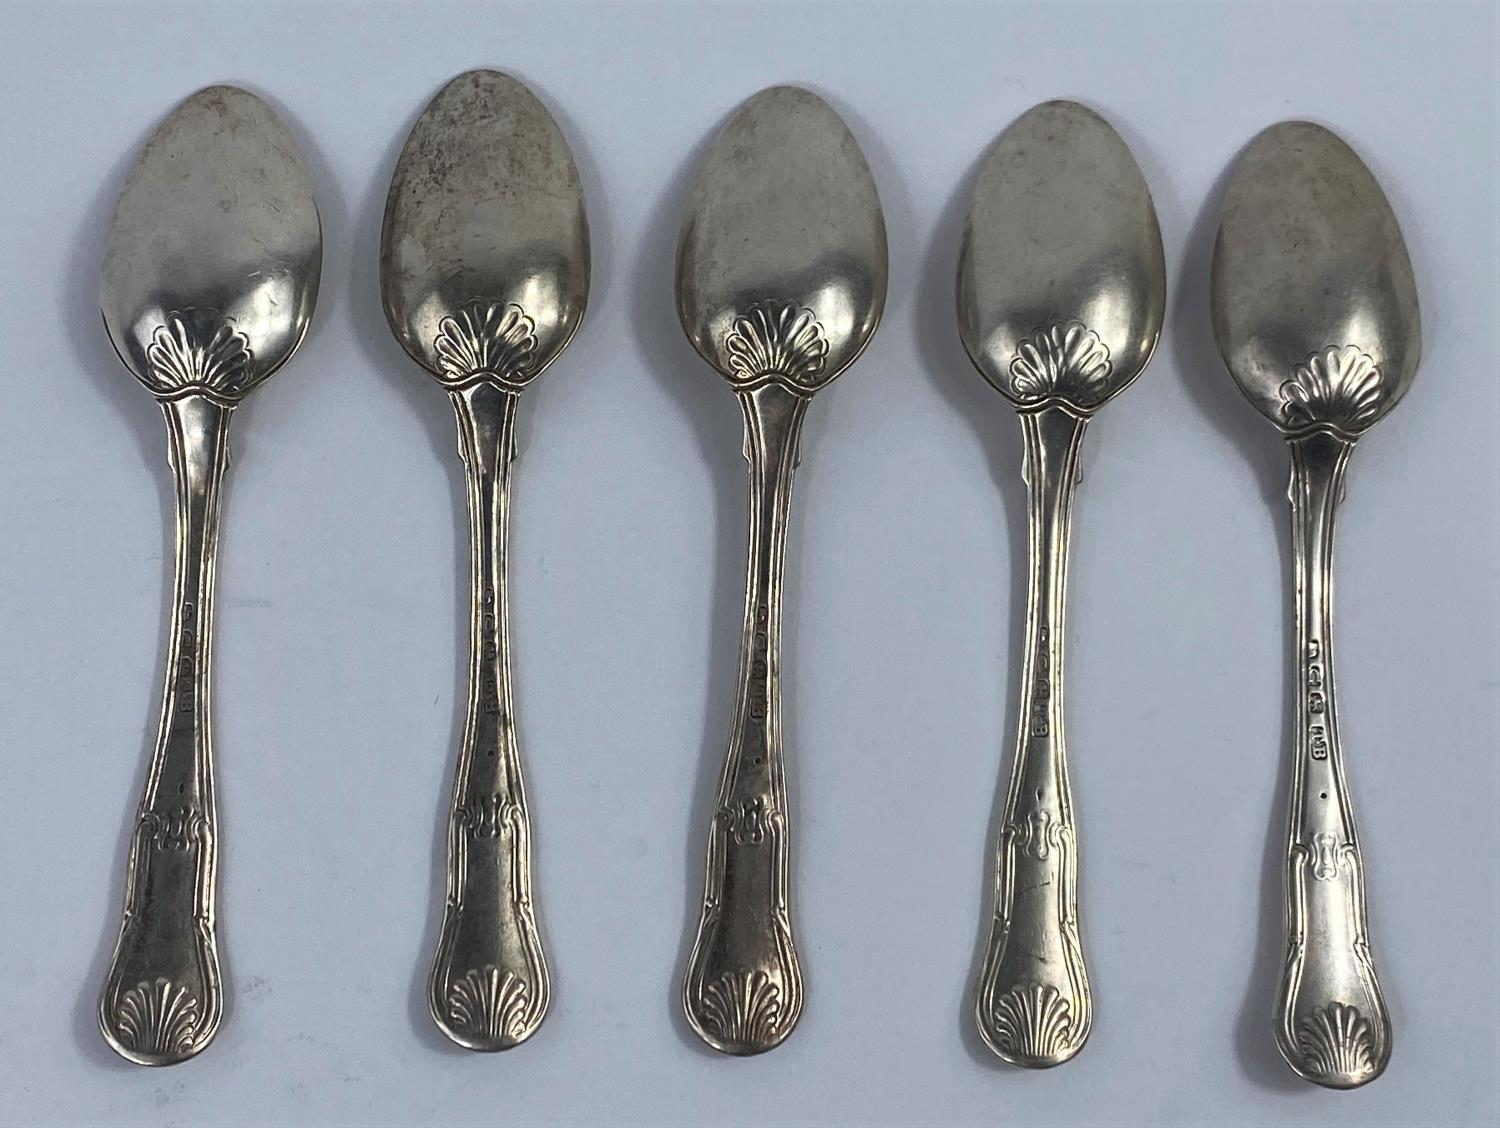 Five hallmarked silver teaspoons, fiddle thread and shell pattern, London 1815, 5.5 oz - Image 2 of 2